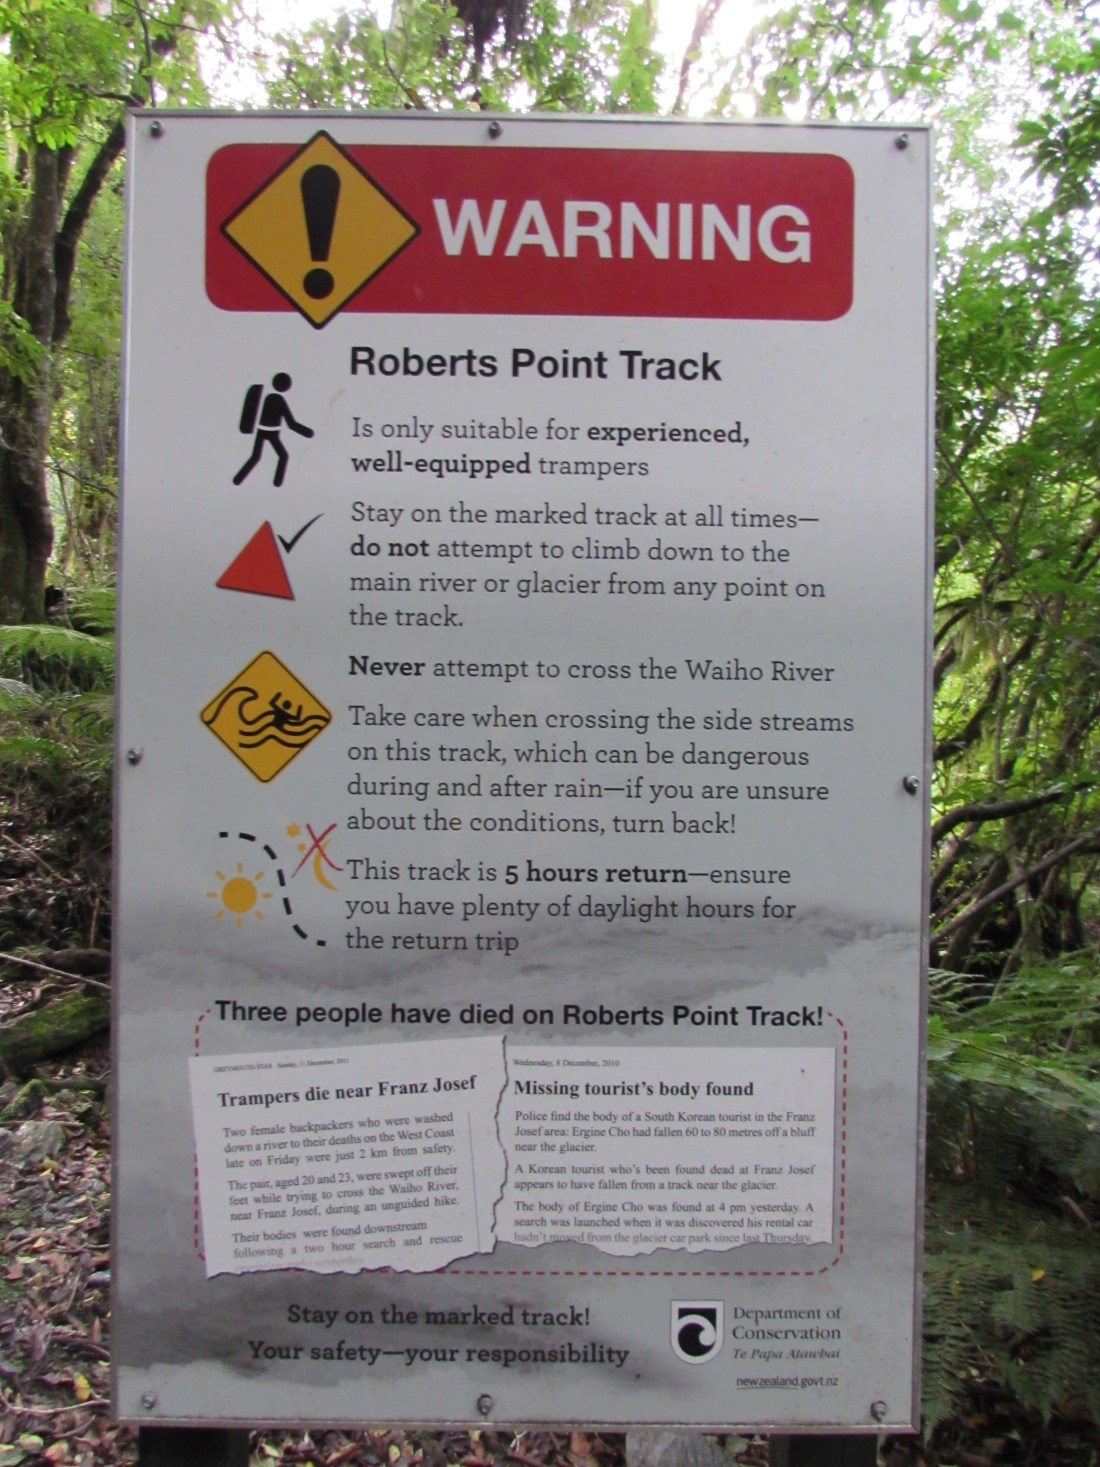 Roberts Point Track Warning, New Zealand